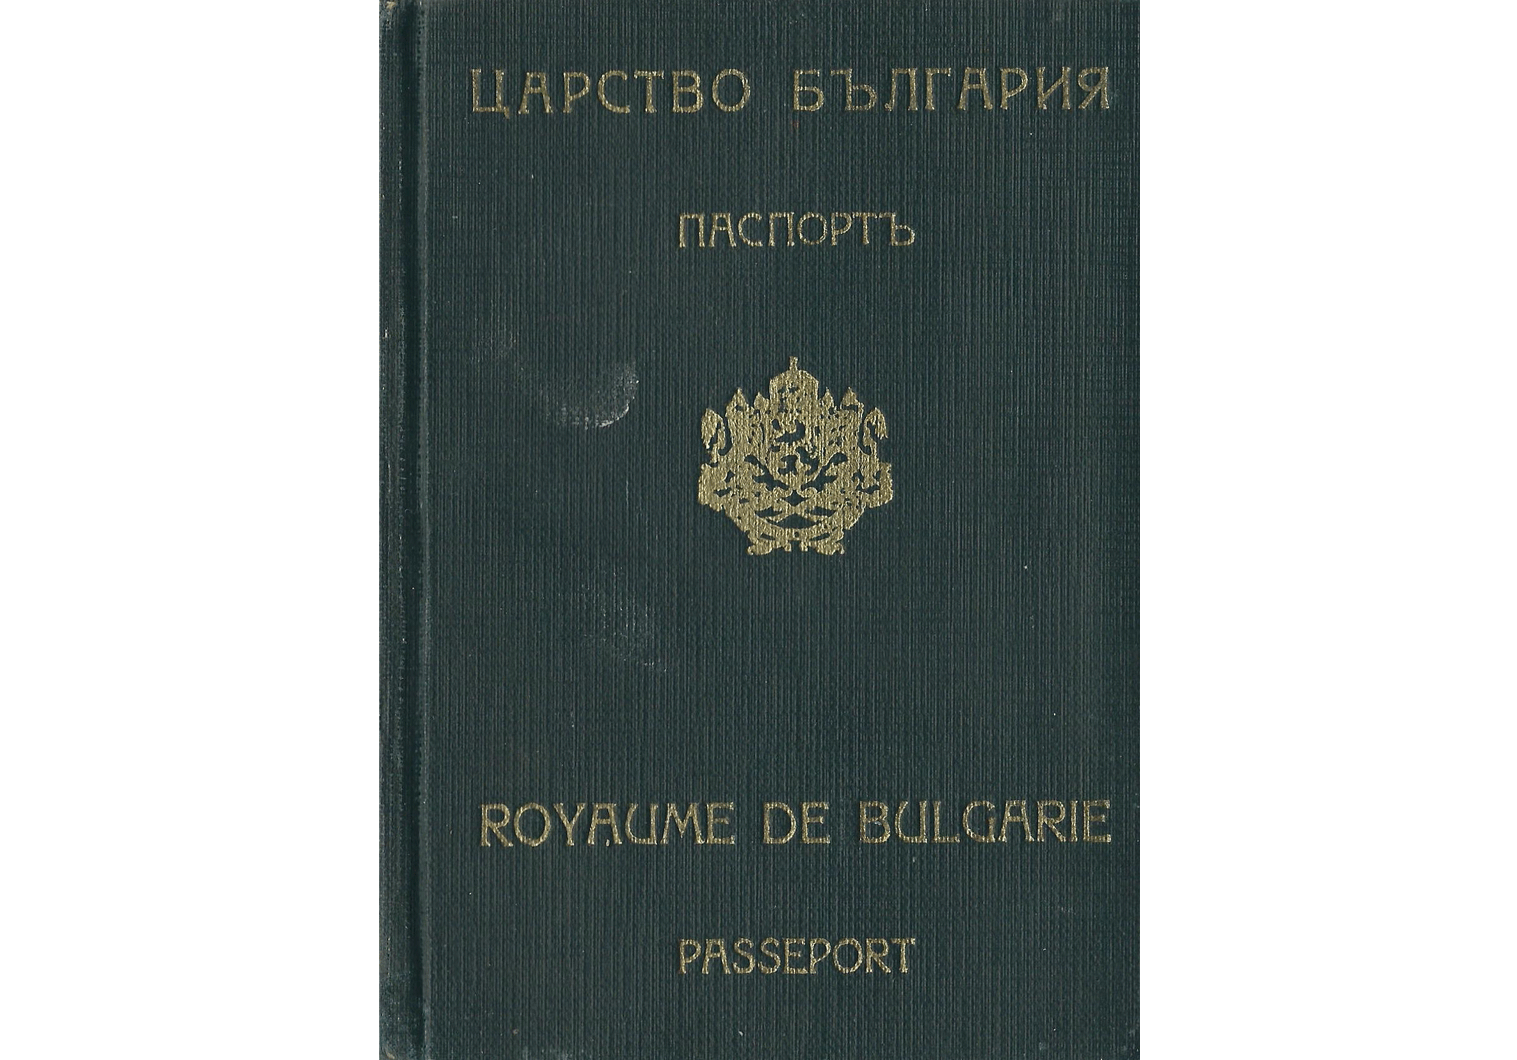 1945 women's international conference passport